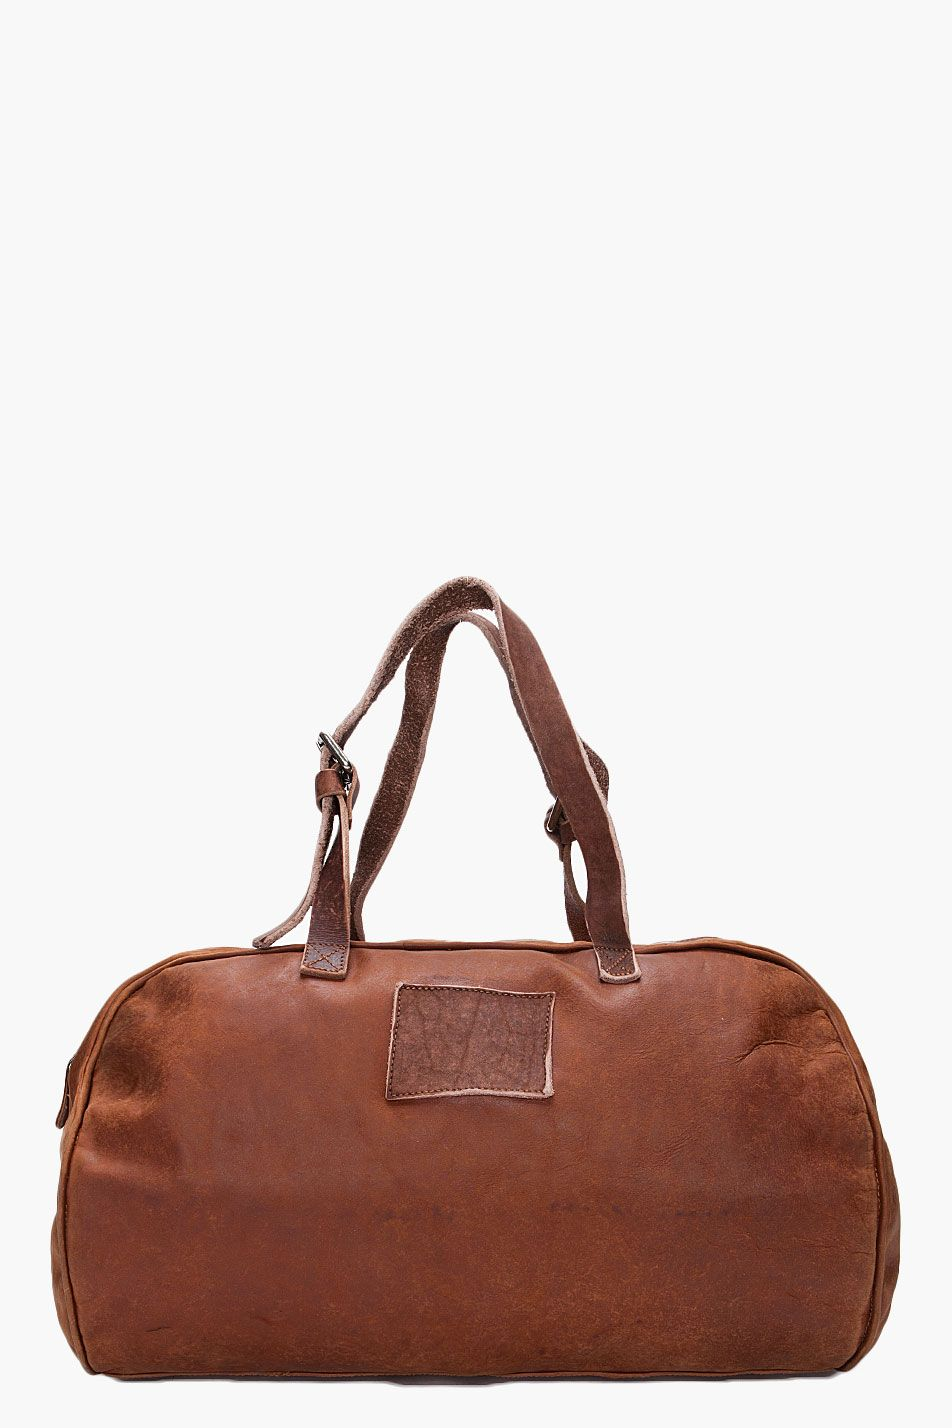 9d0f16a7de washed tan duffle bag ++ common projects